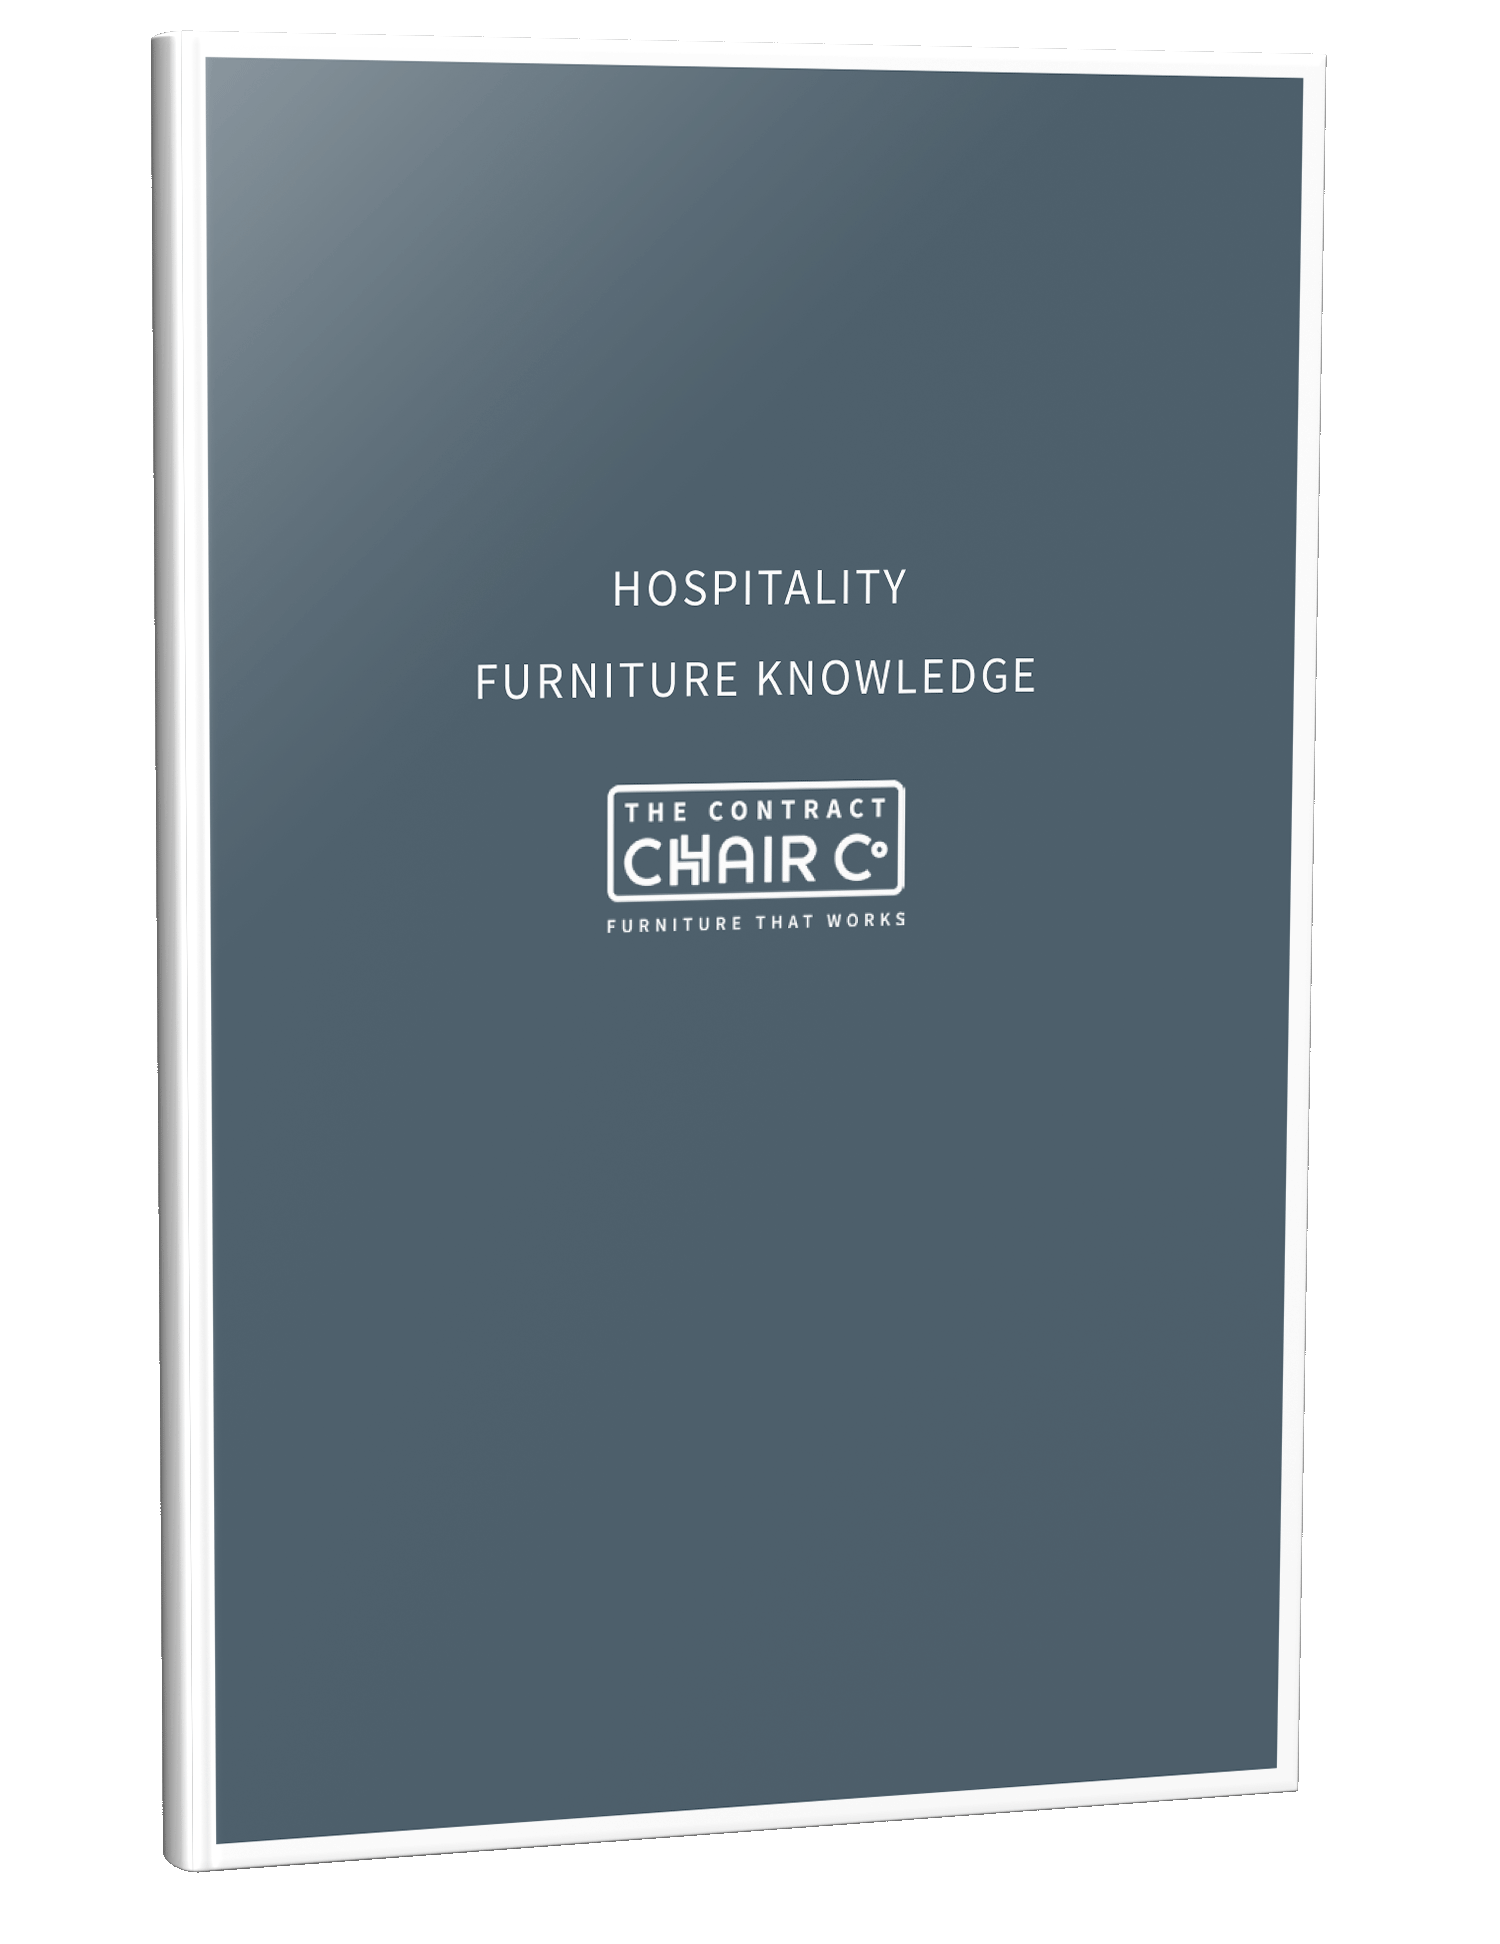 LP Hospitality Furniture Knowledge Book